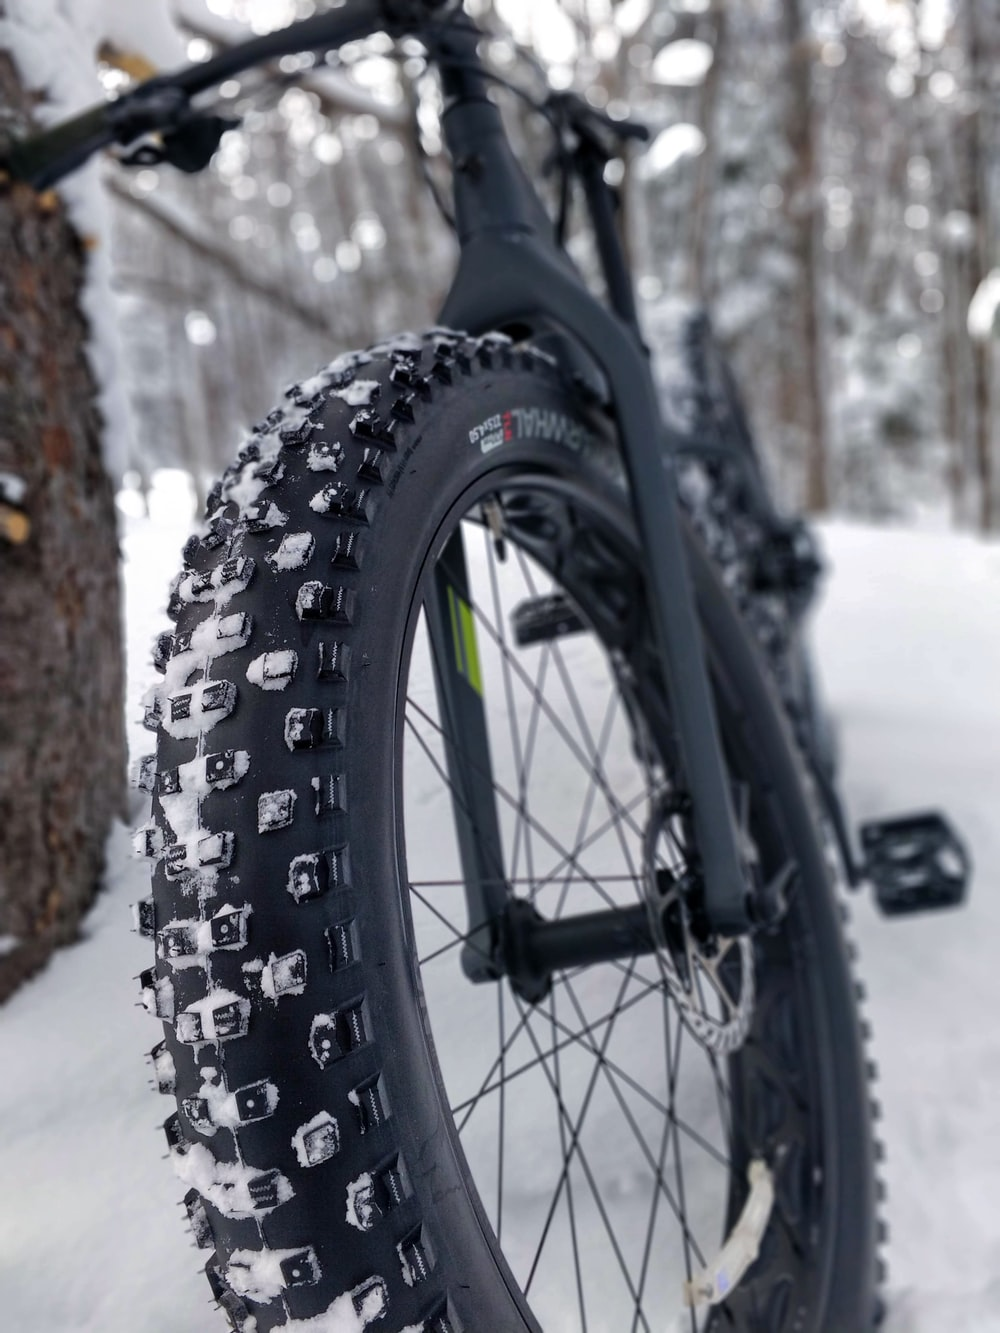 black hardtail bike leaning on tree with snow covered field